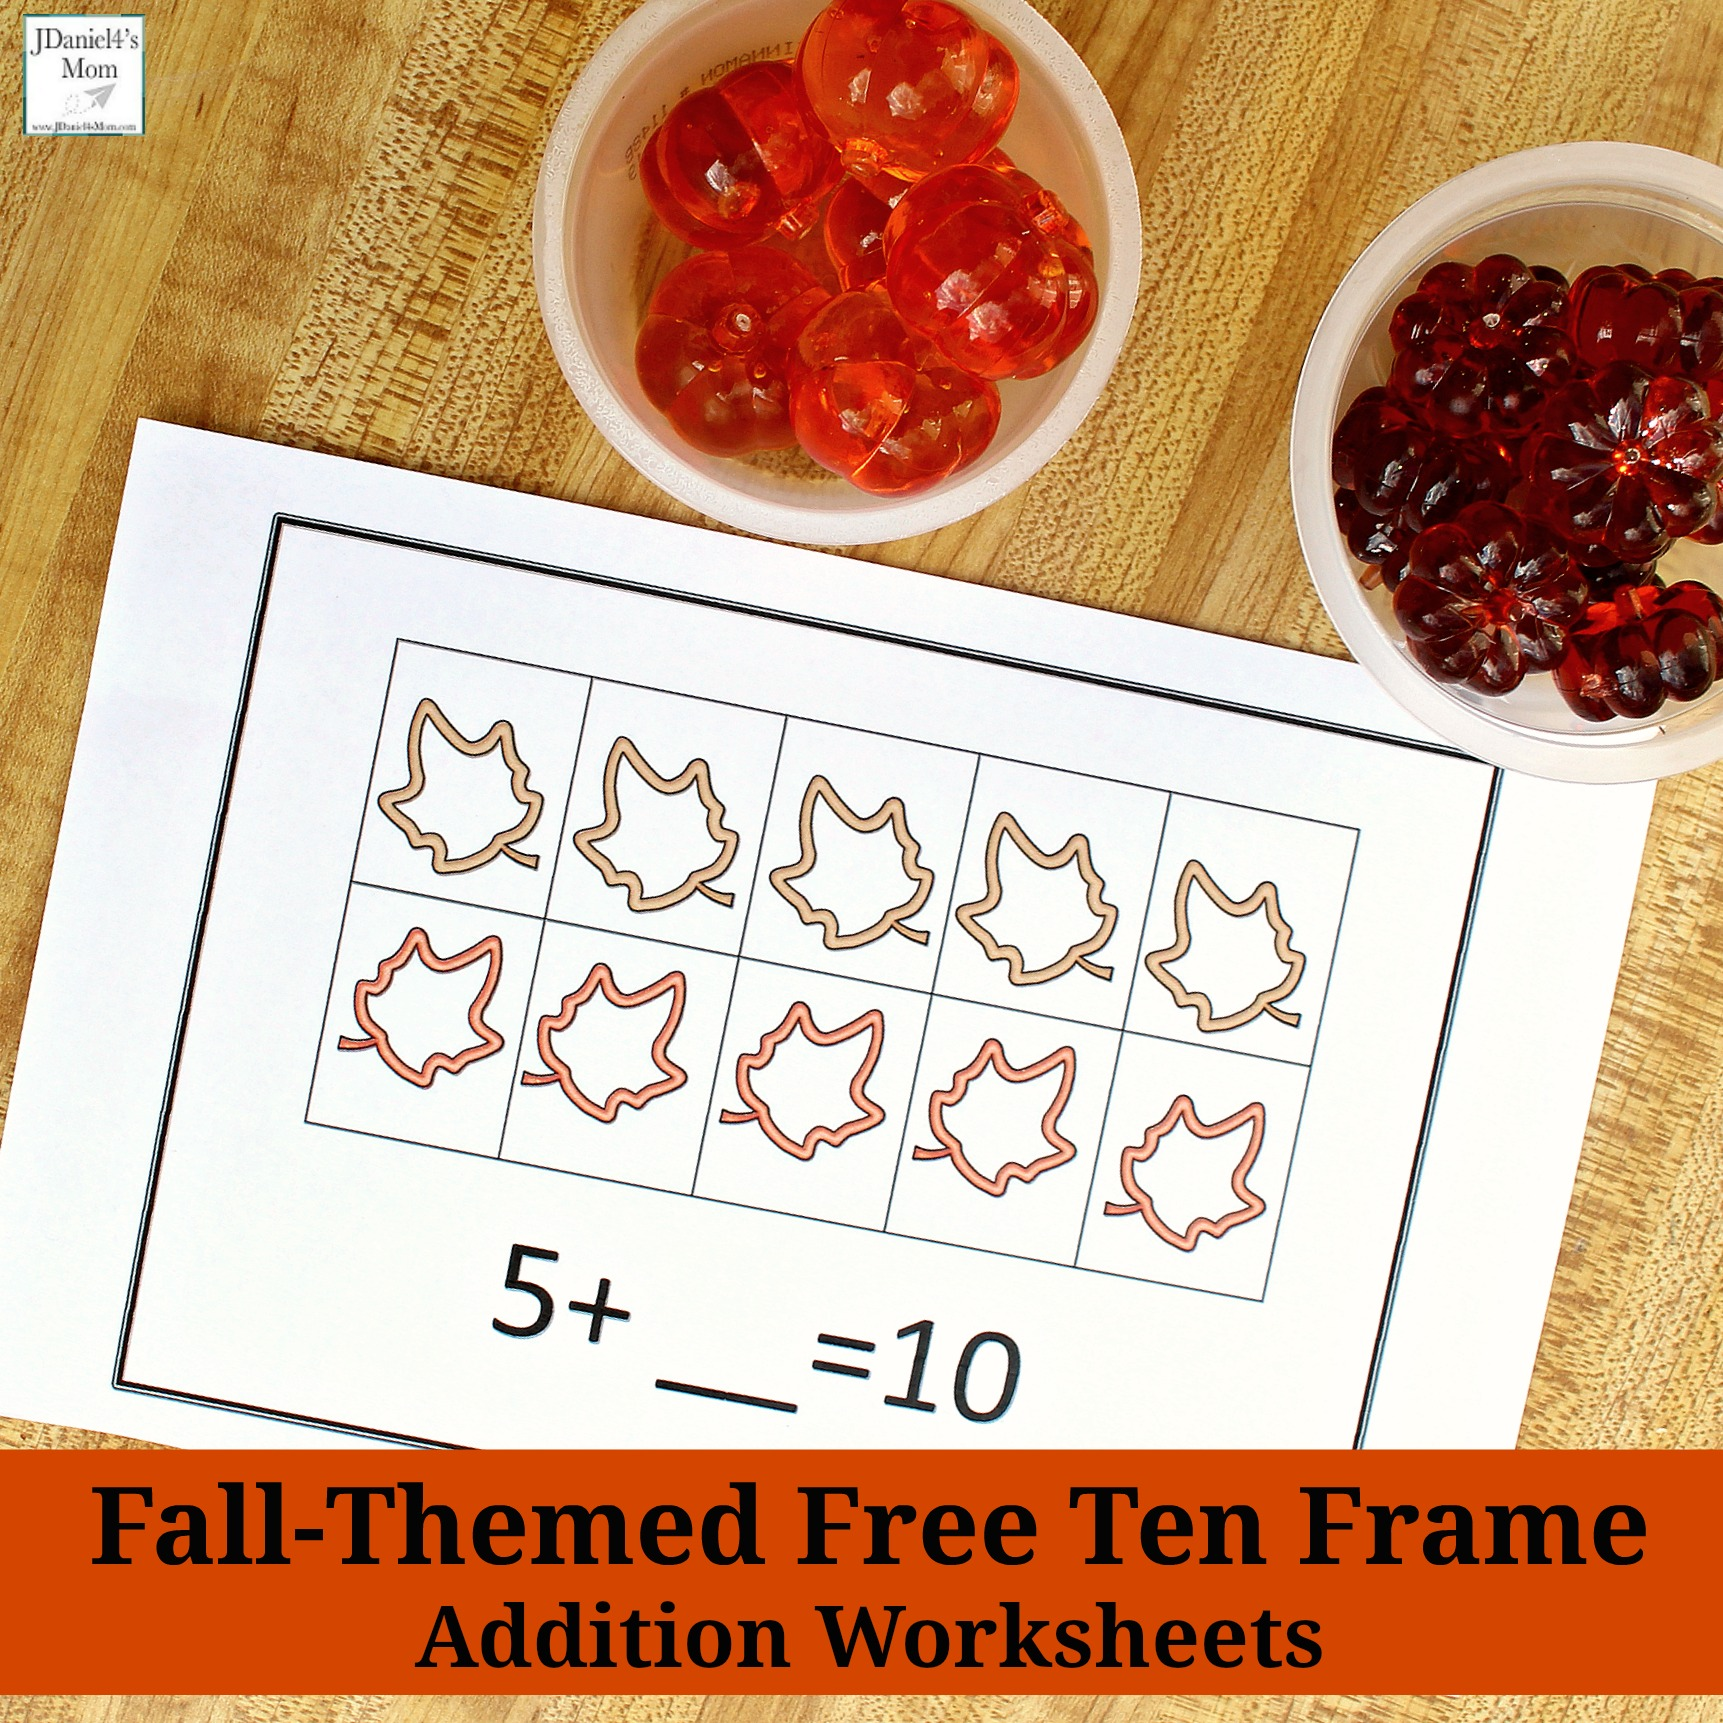 Fall themed free ten frame addition worksheets for Detached addition